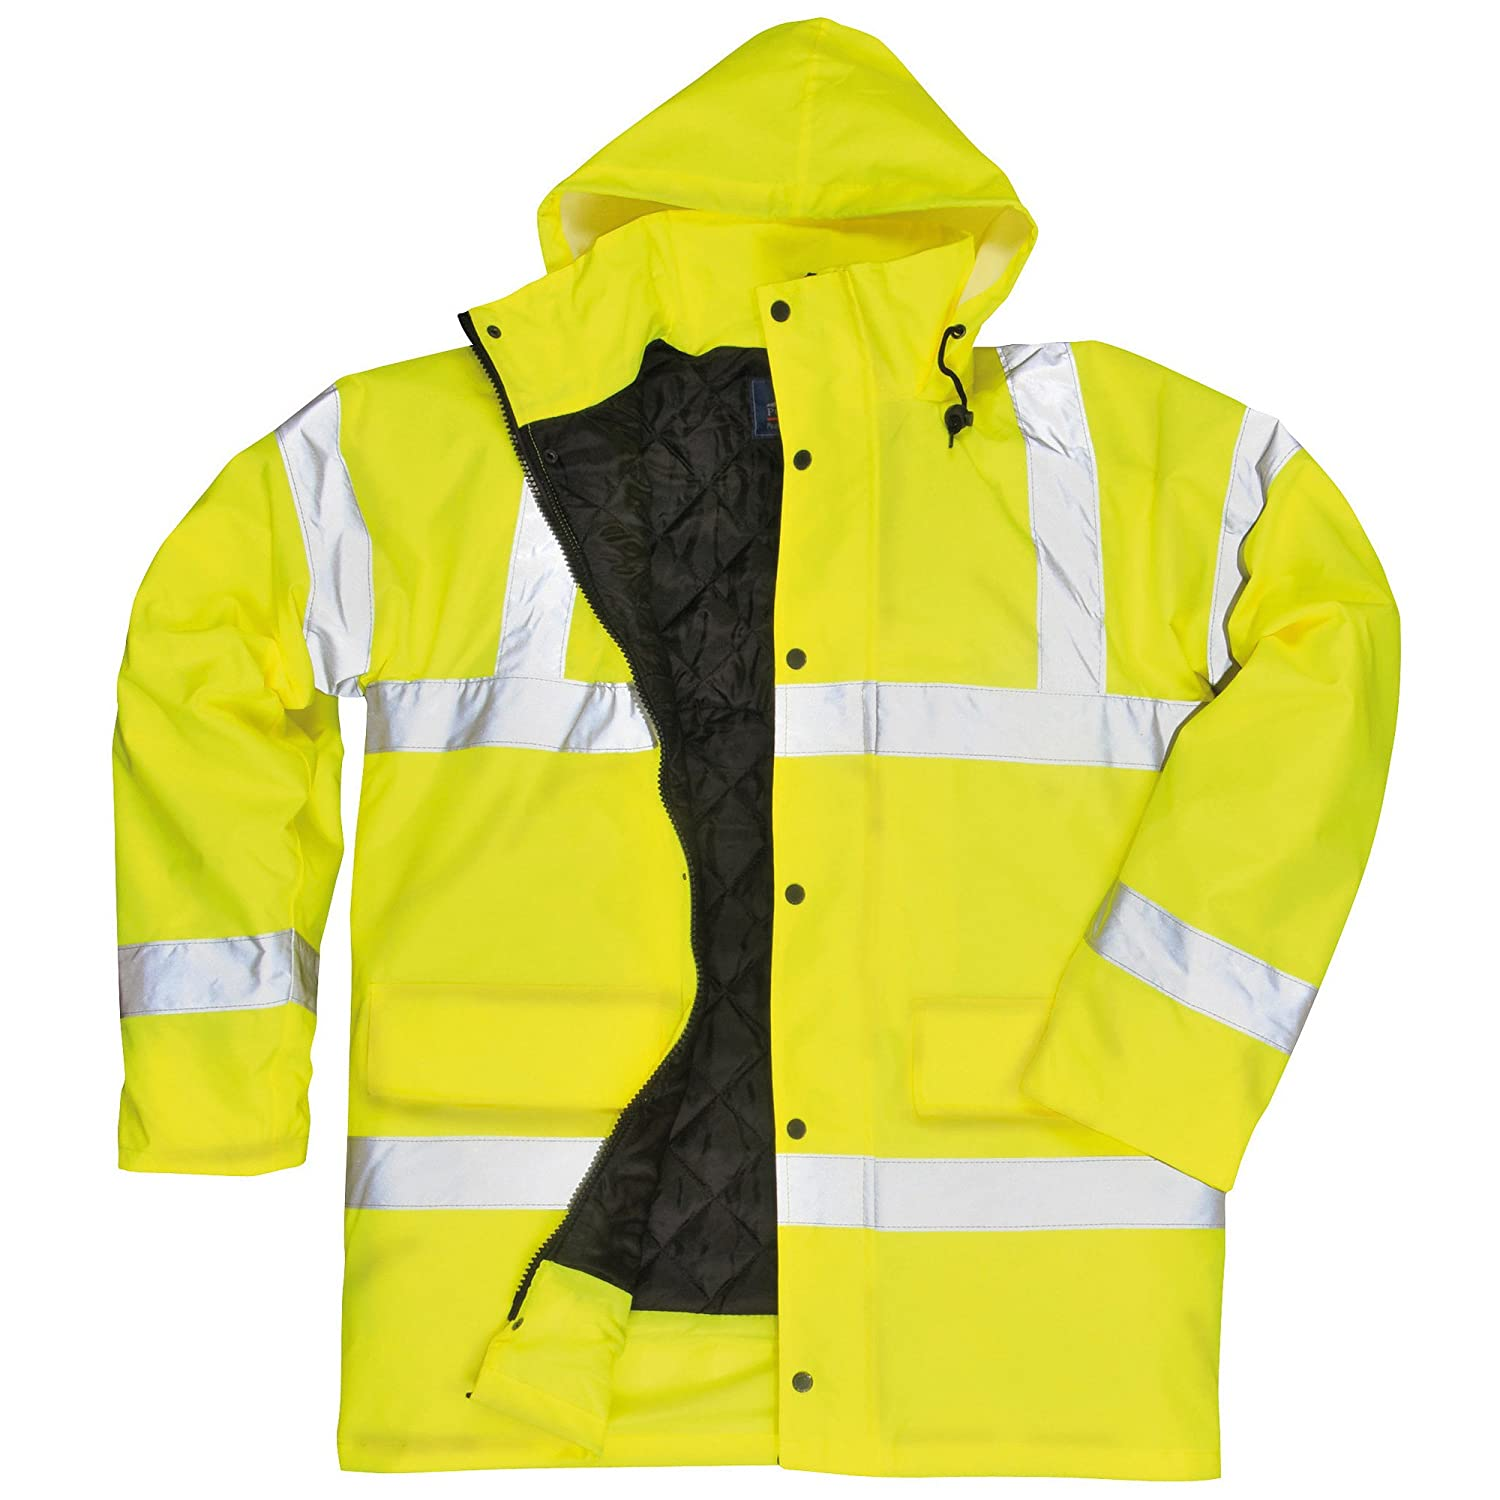 Portwest Hi-Vis Traffic Jacket (S460) / Workwear / Safetywear